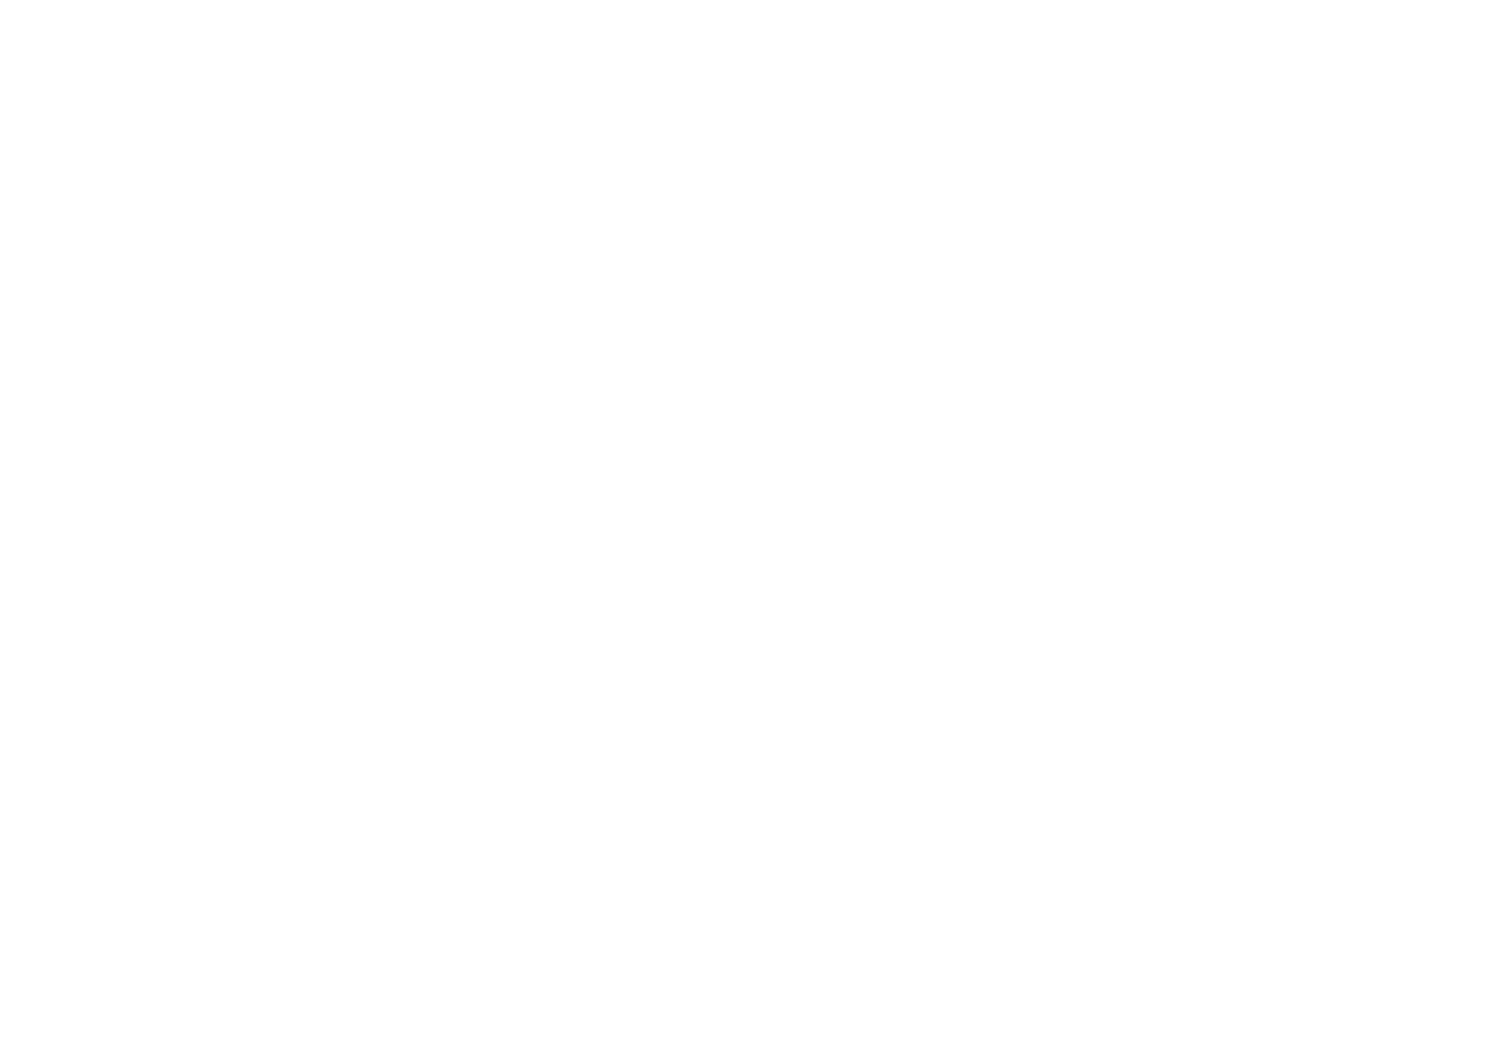 MEADOW PRODUCTIONS